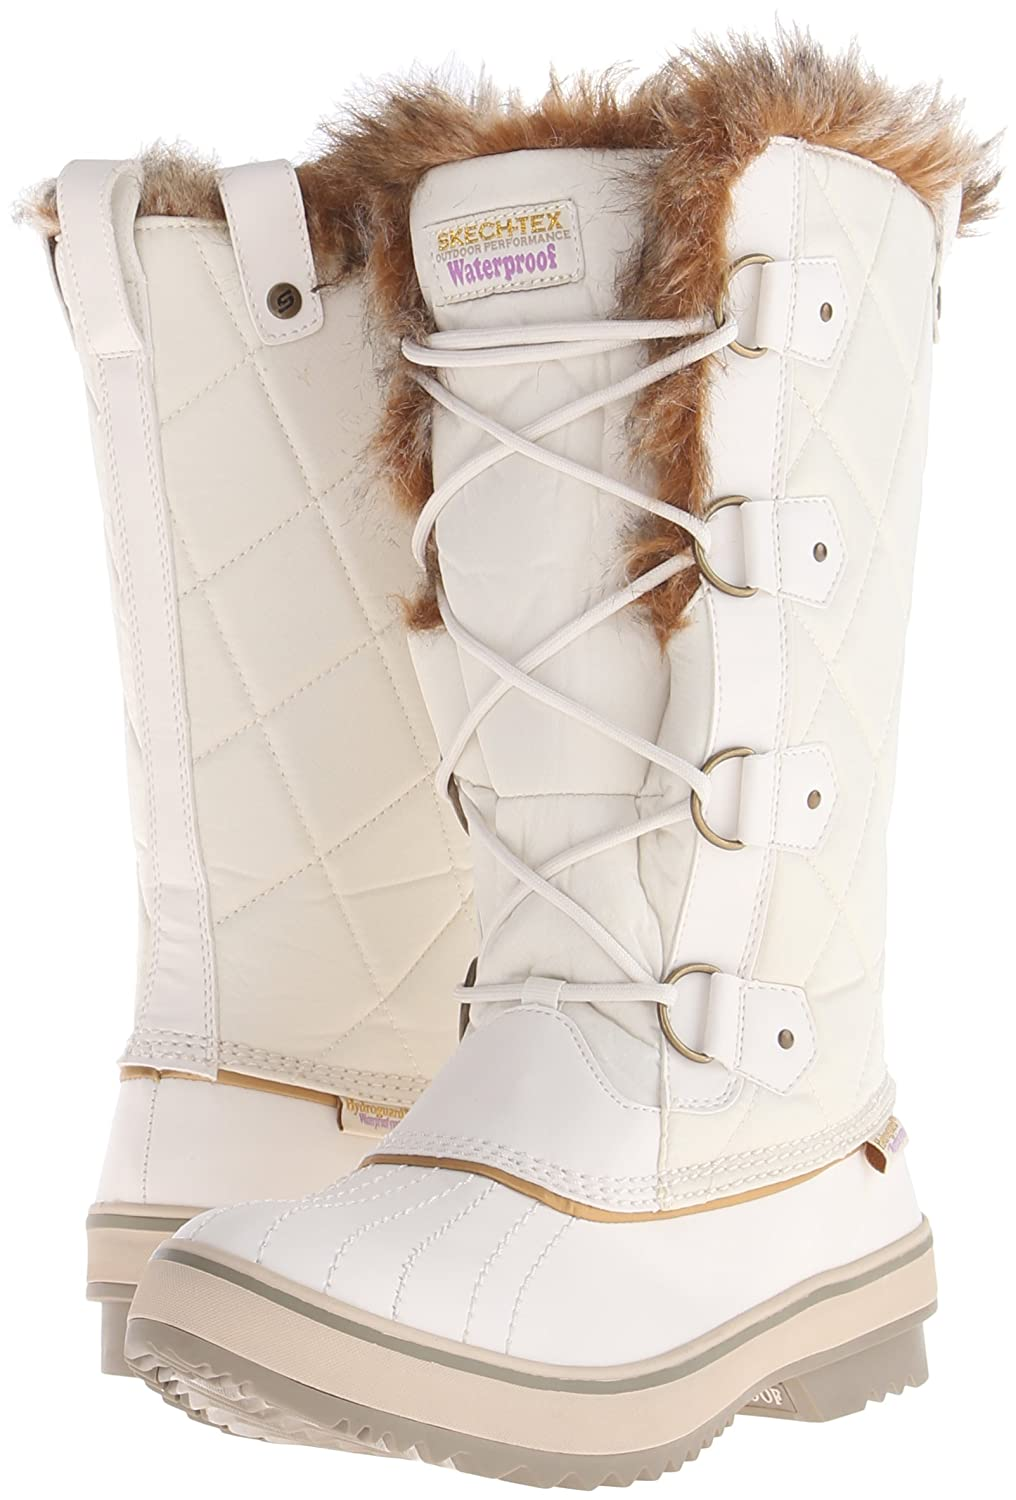 Skechers Women's Highlanders-Tall 6 Quilt Snow Boot B00QFK0SHE 6 Highlanders-Tall M US|Winter White 02d5cb